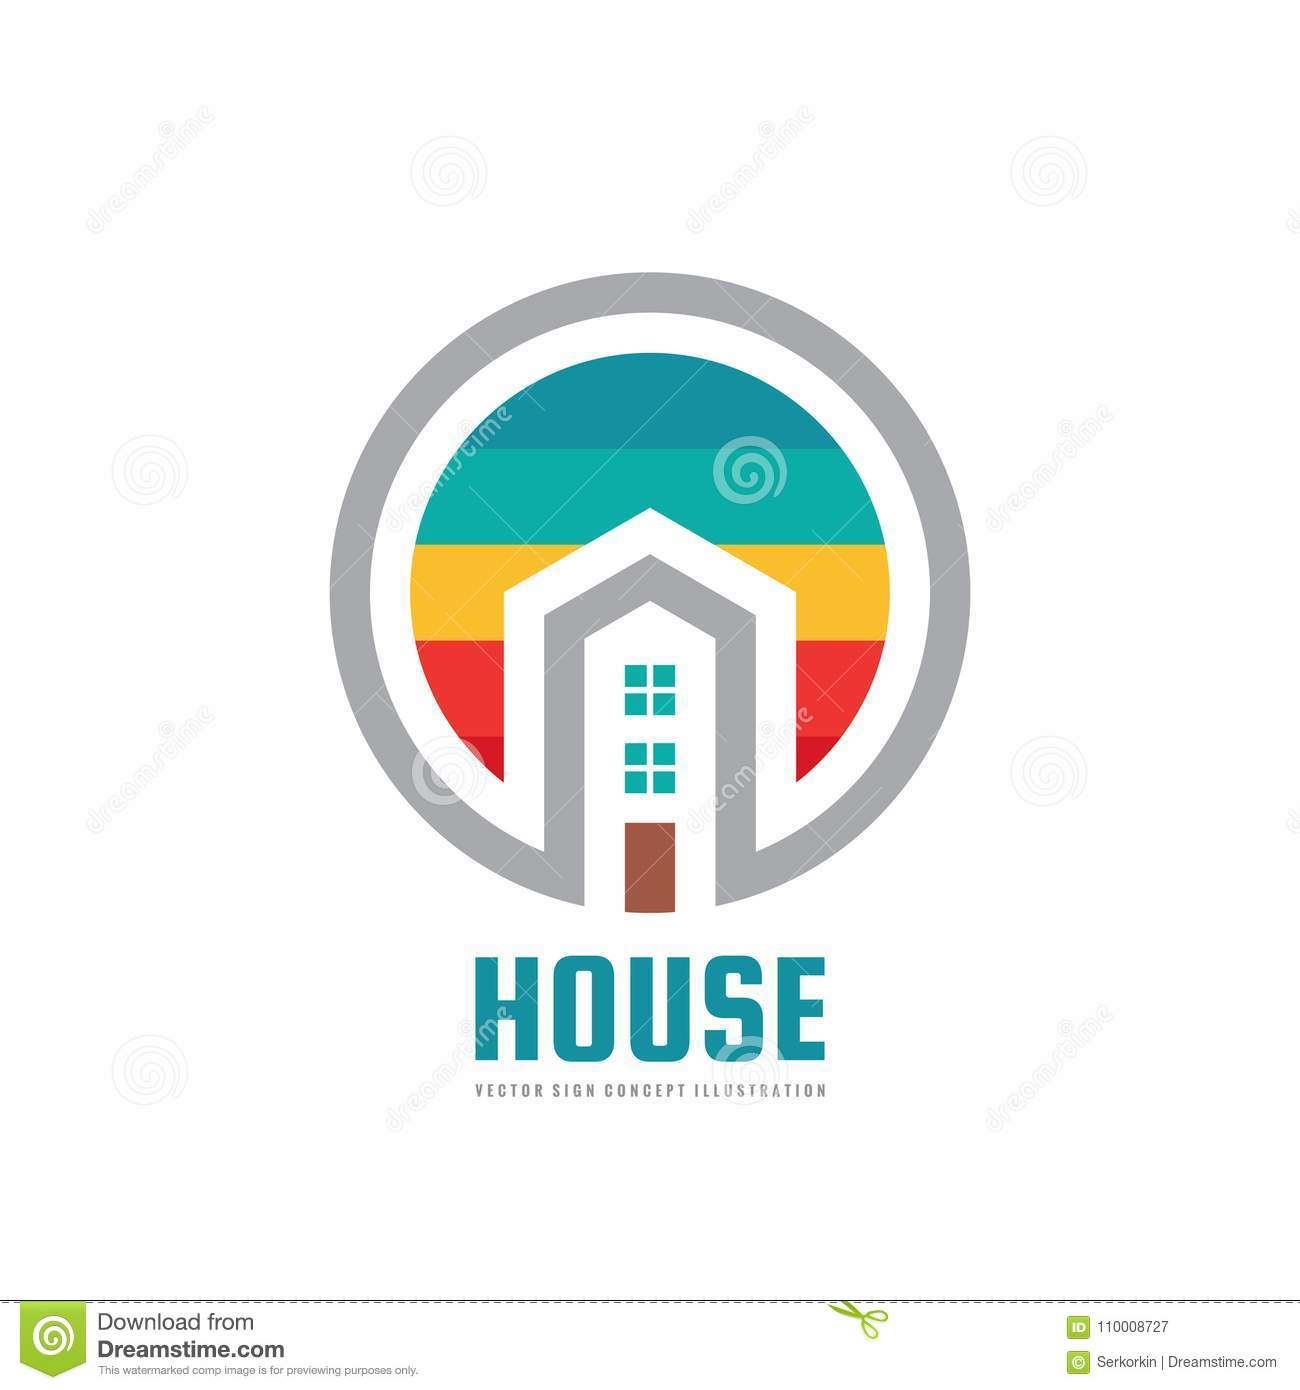 House Home Building - Vector Logo Concept Illustration For ... on creative camping, simple home projects, creative love, creative space, creative thanksgiving, creative writing, beautiful home projects, fun home projects, creative cars, creative knitting, unique diy projects, creative technology, modern home projects, funny home projects, cool home projects, creative sewing, creative decorating, cute home projects, smart home projects, creative art,